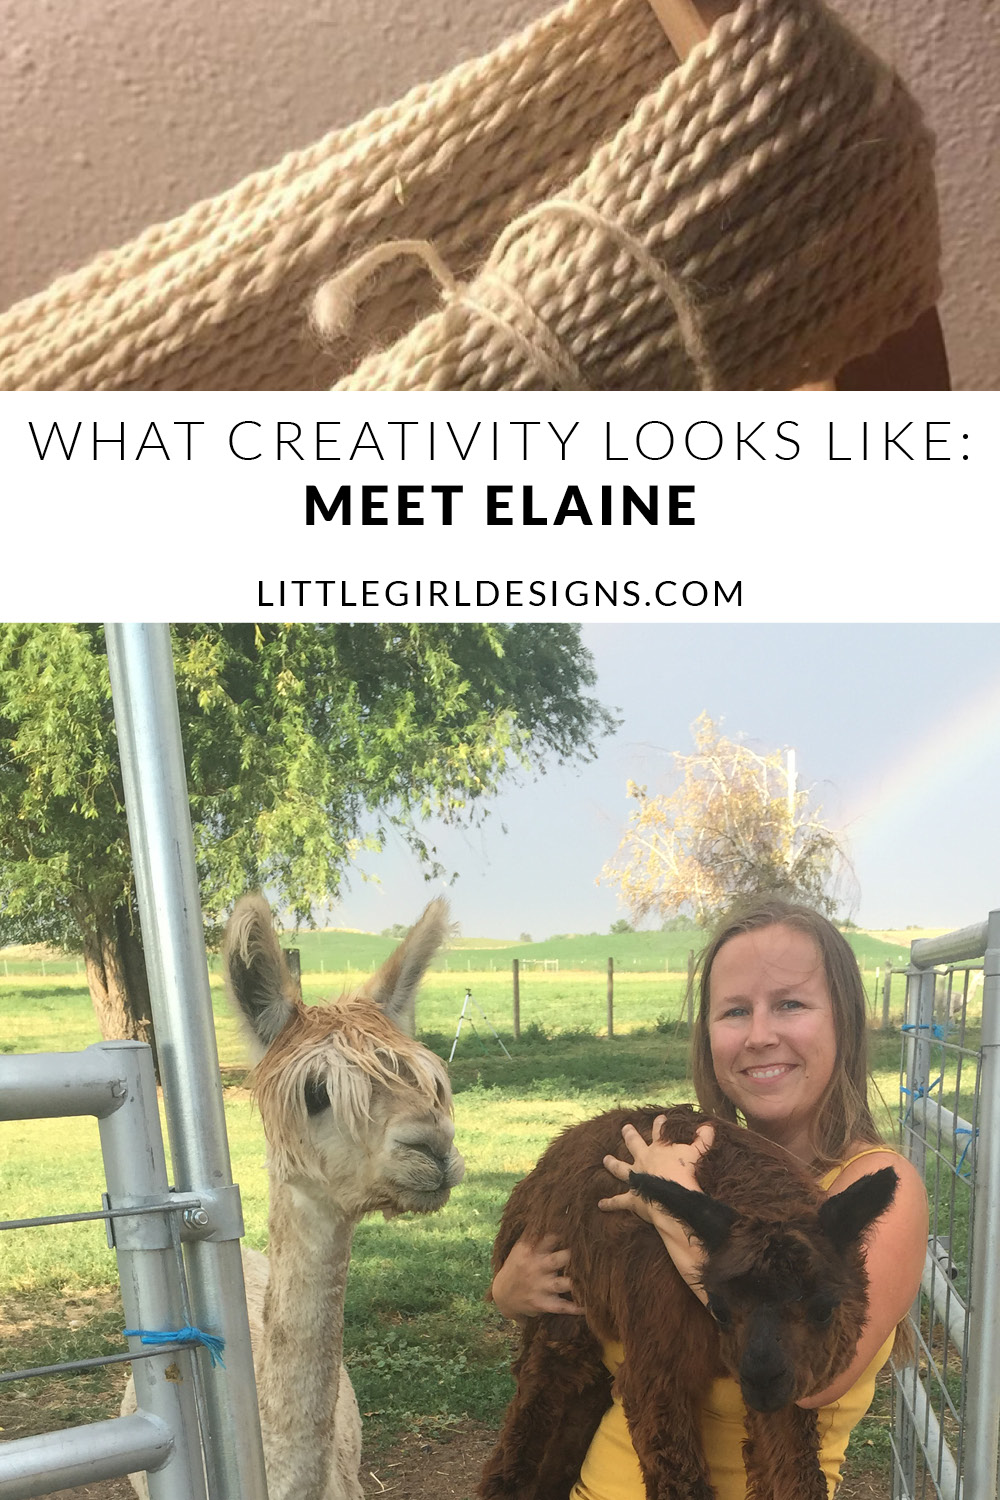 What Creativity Looks Like: Meet Elaine, Owner of Old Homestead Alpacas. She's taking us behind-the-scenes of what it looks like to run an alpaca farm. What an amazing person!